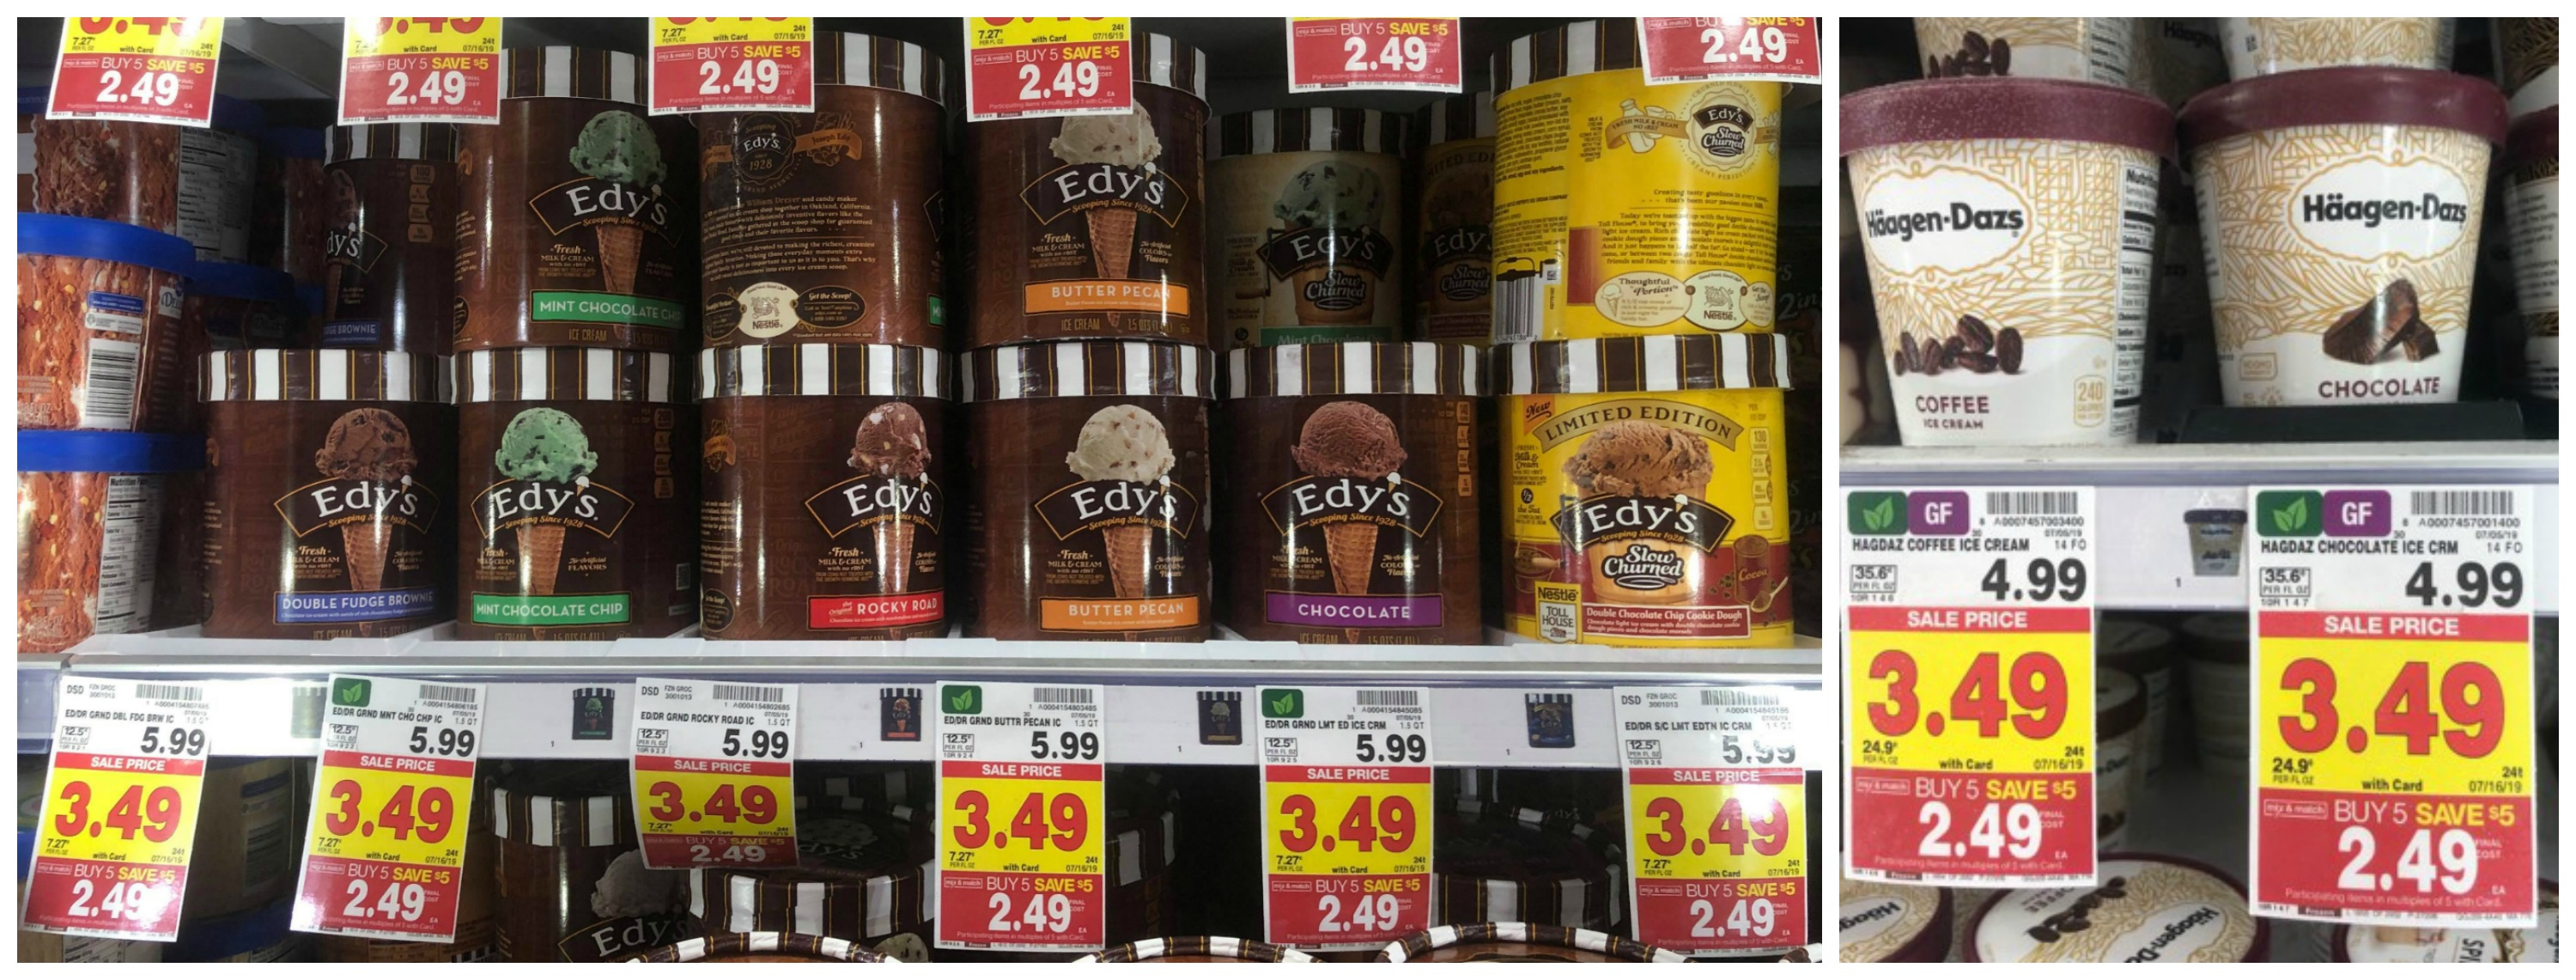 image relating to Haagen Dazs Coupon Printable identify Get Haagen-Dazs and Edys Ice Product for Precisely $1.99 every single at